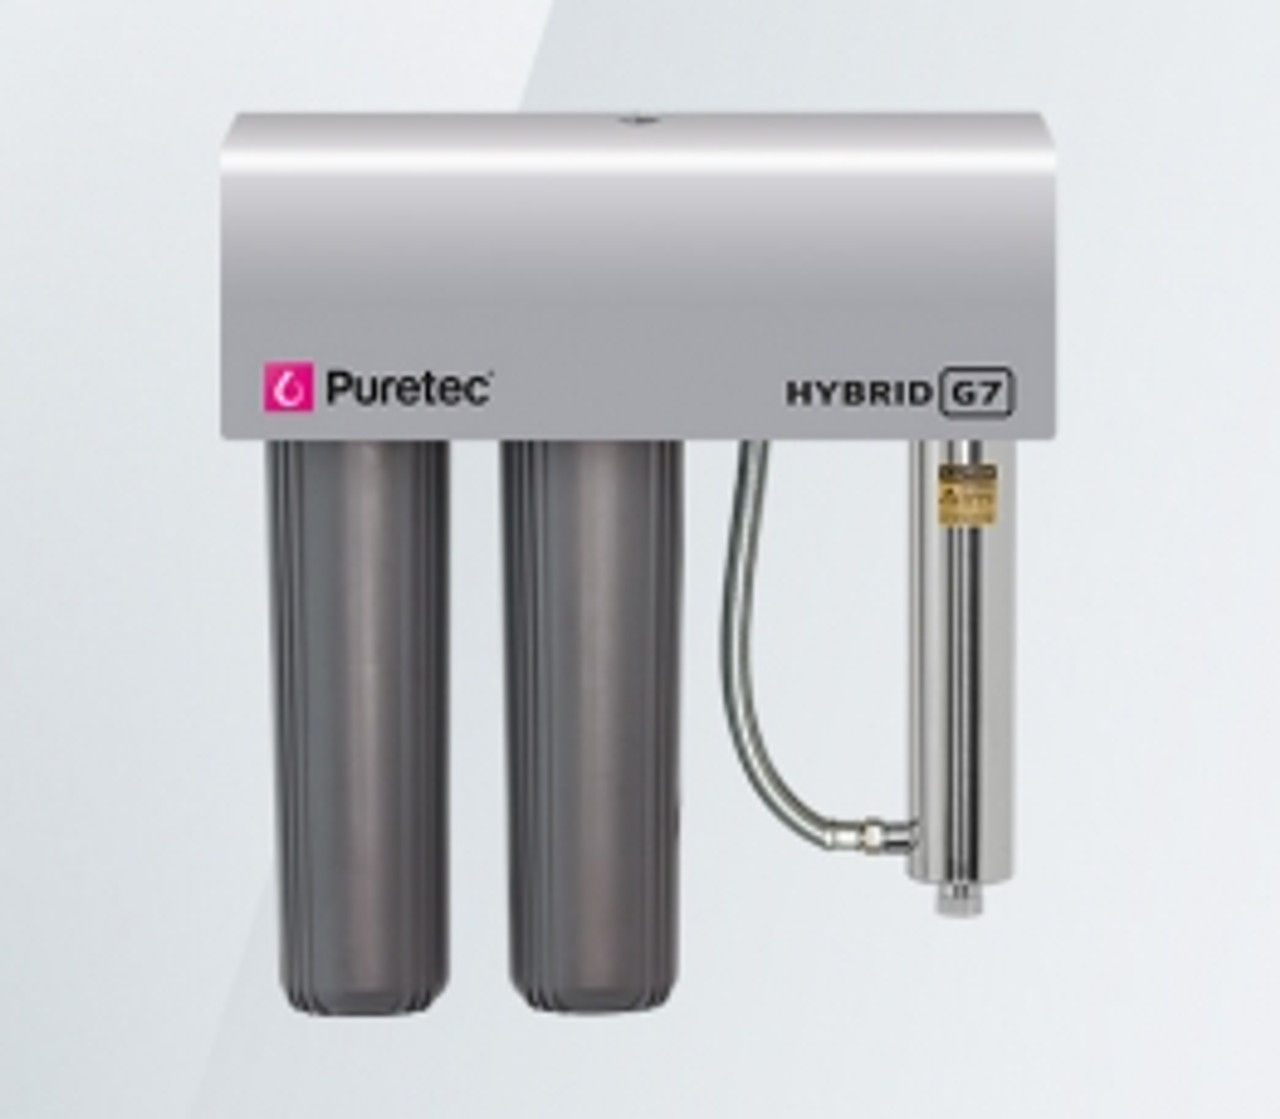 Puretec Hybrid G7 high flow whole house UV water treatment system